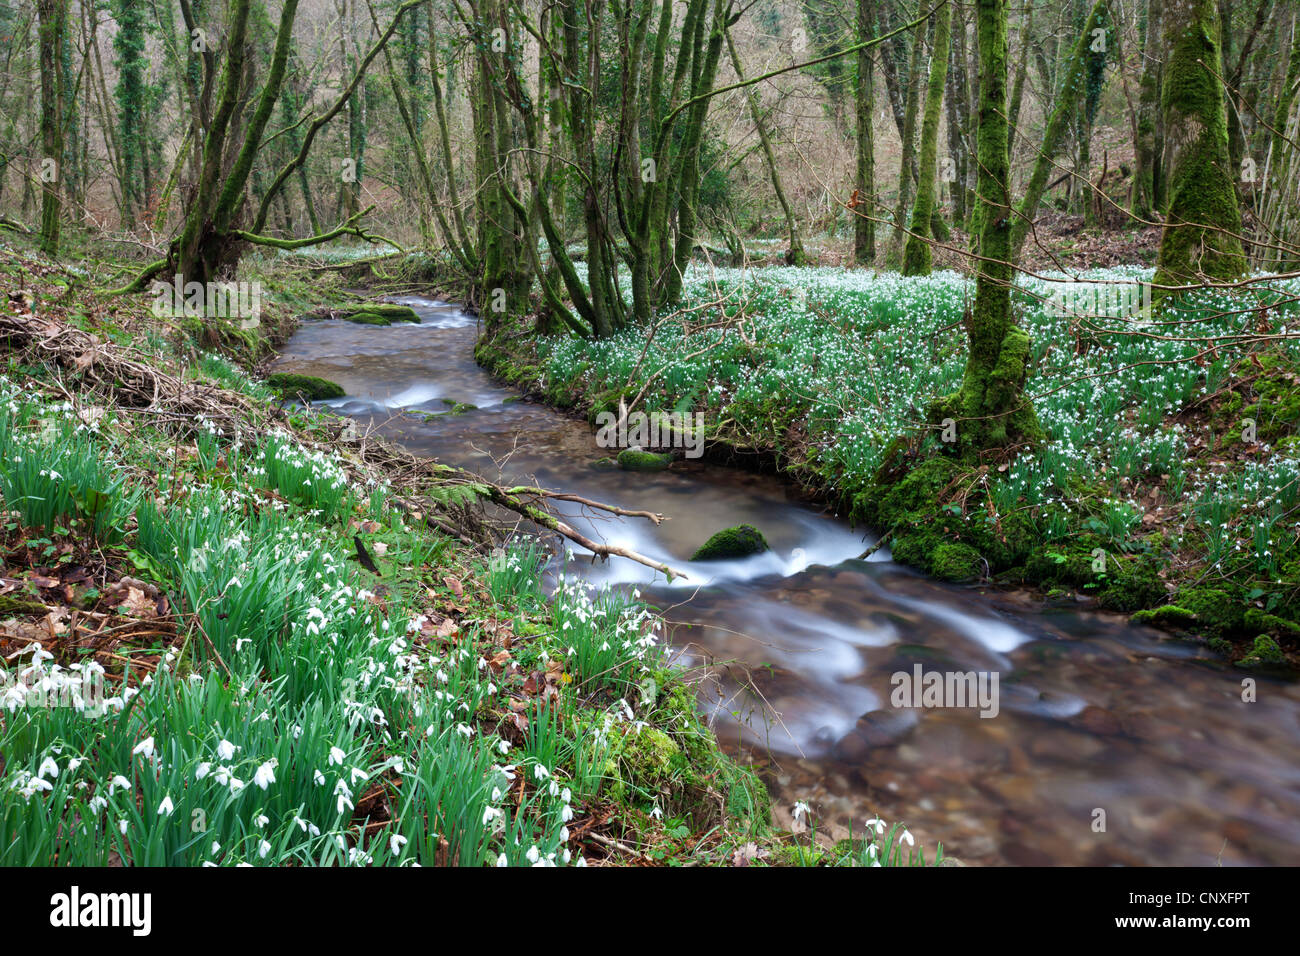 Snowdrops (Galanthus) flowering in North Hawkwell Wood, otherwise known as Snowdrop Valley, Exmoor - Stock Image